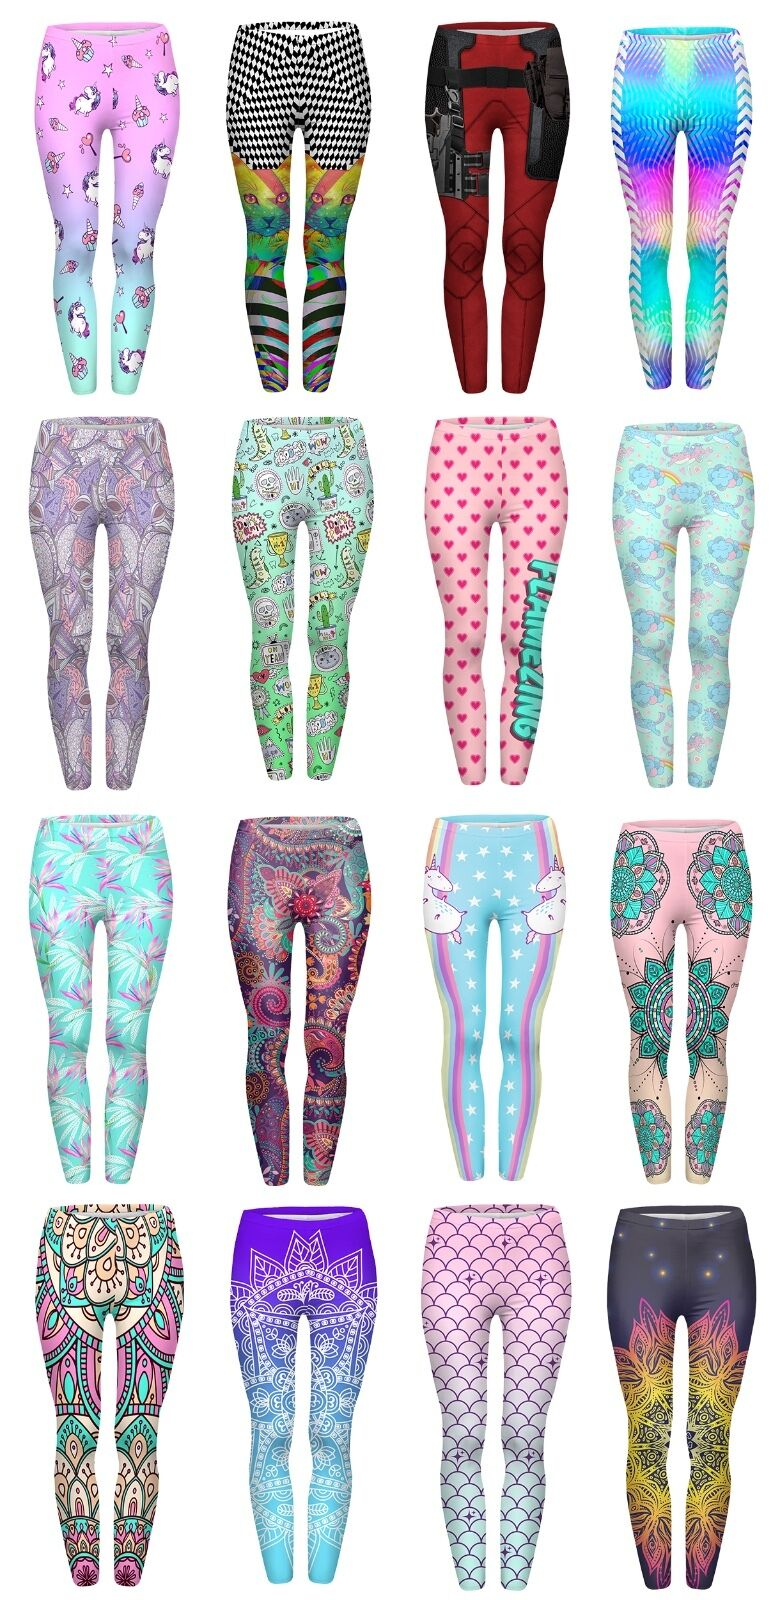 Womens Yoga Printed Leggings Stretchy Workout Running Gym Pants